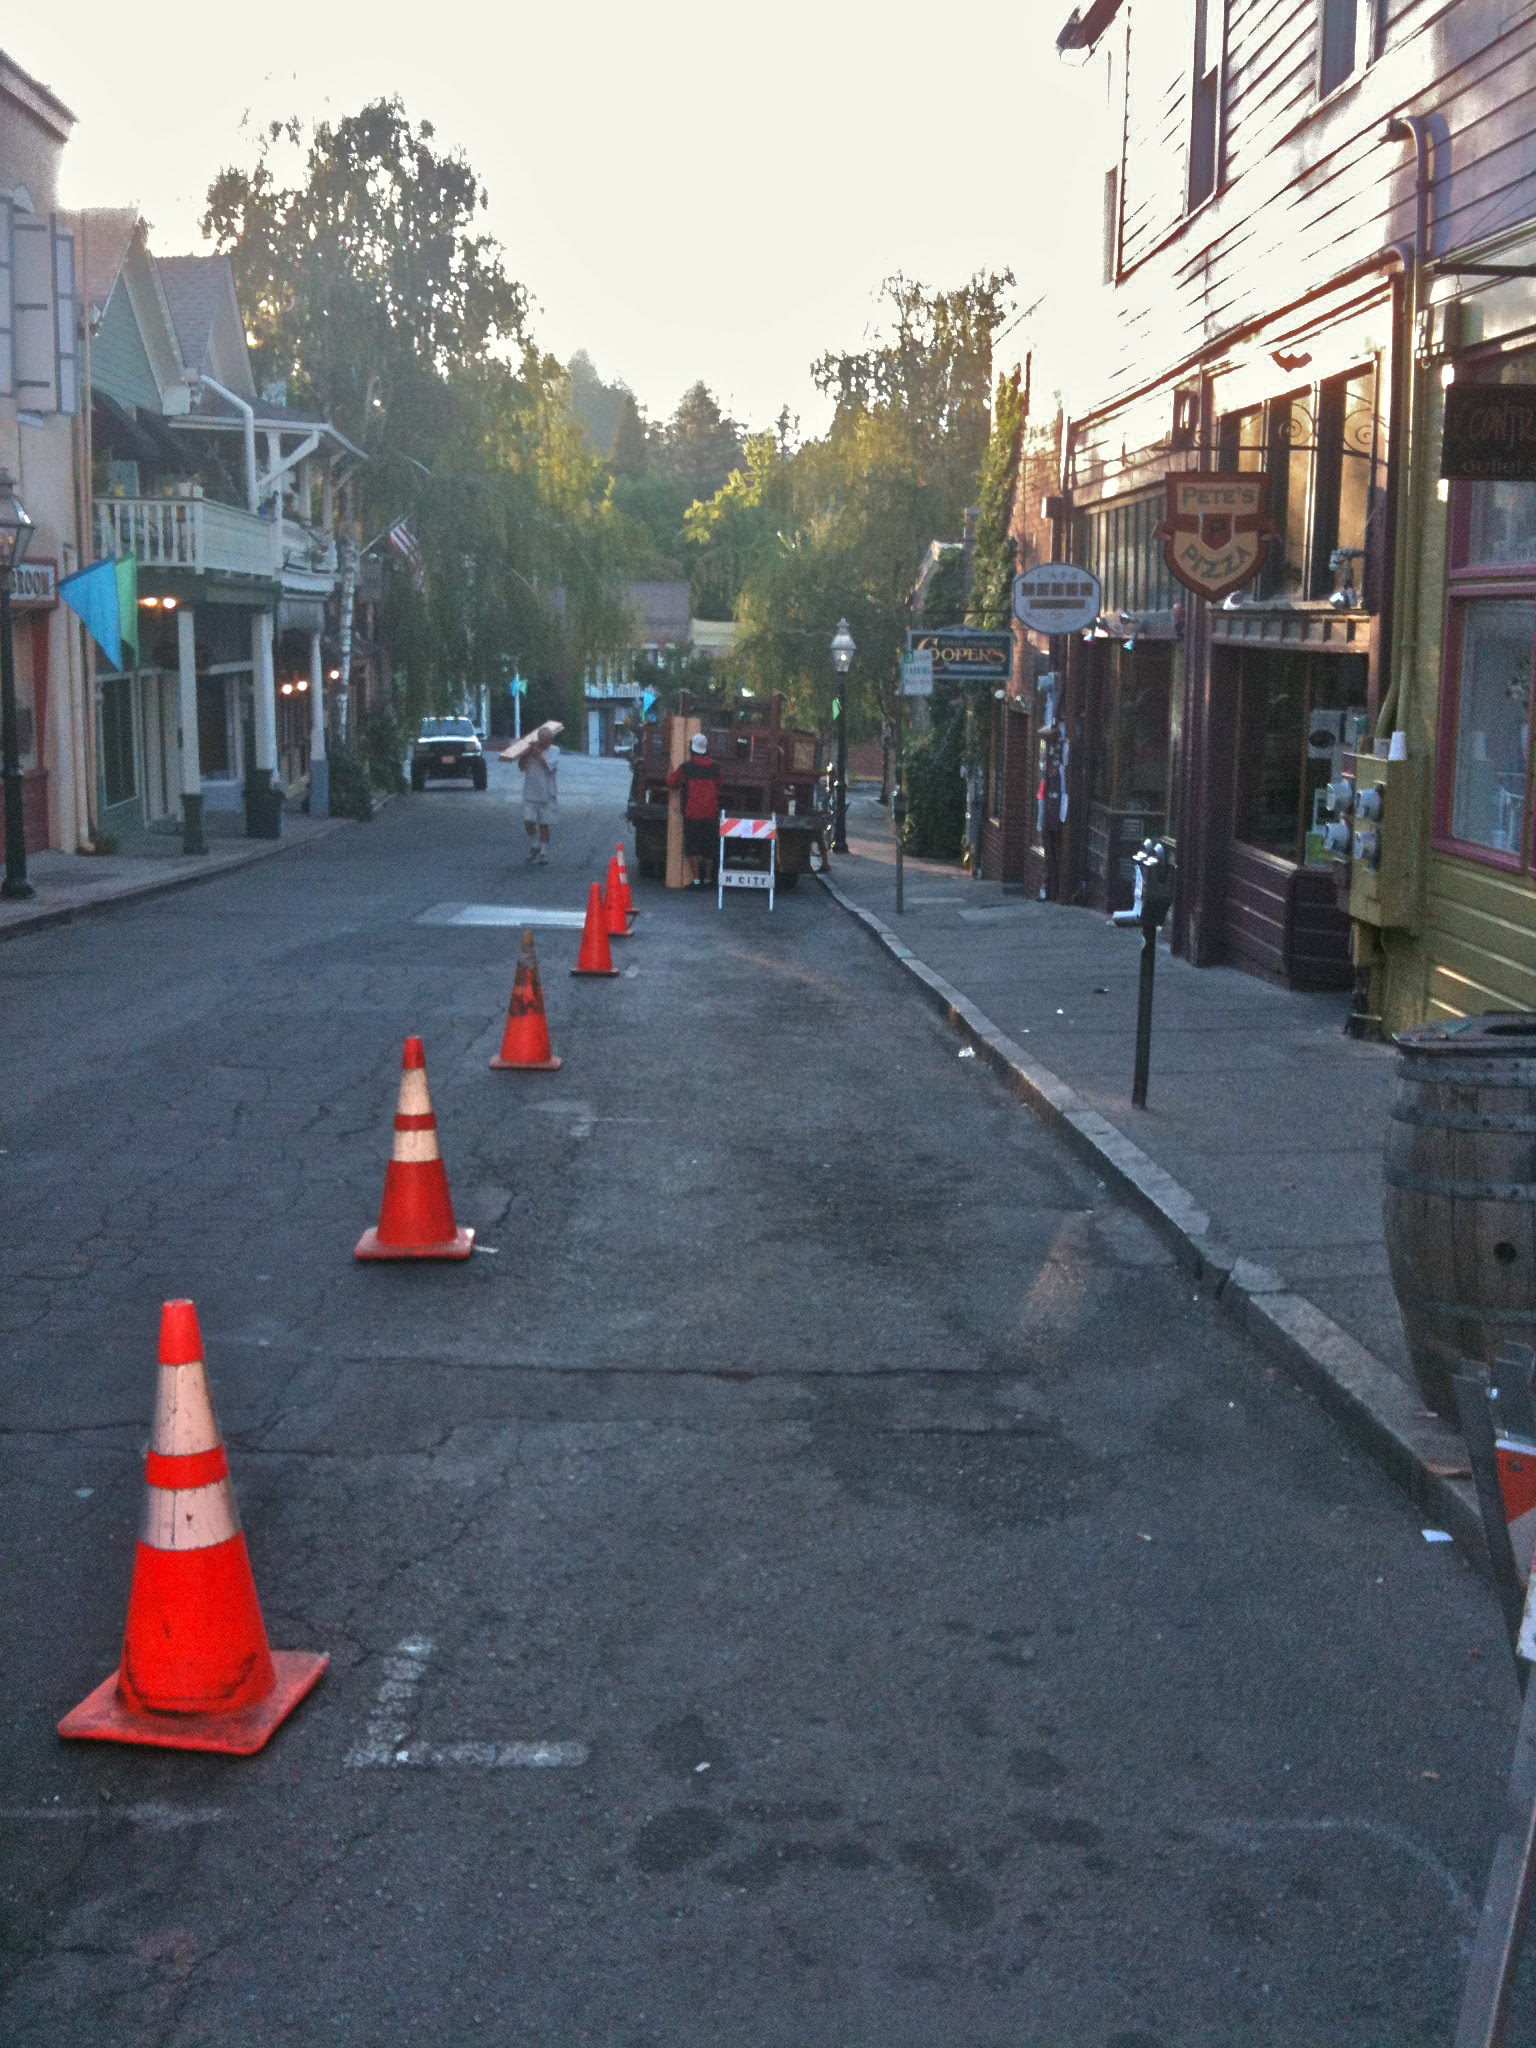 Wild & Scenic Film Festival » The Commercial Street Boardwalk ...